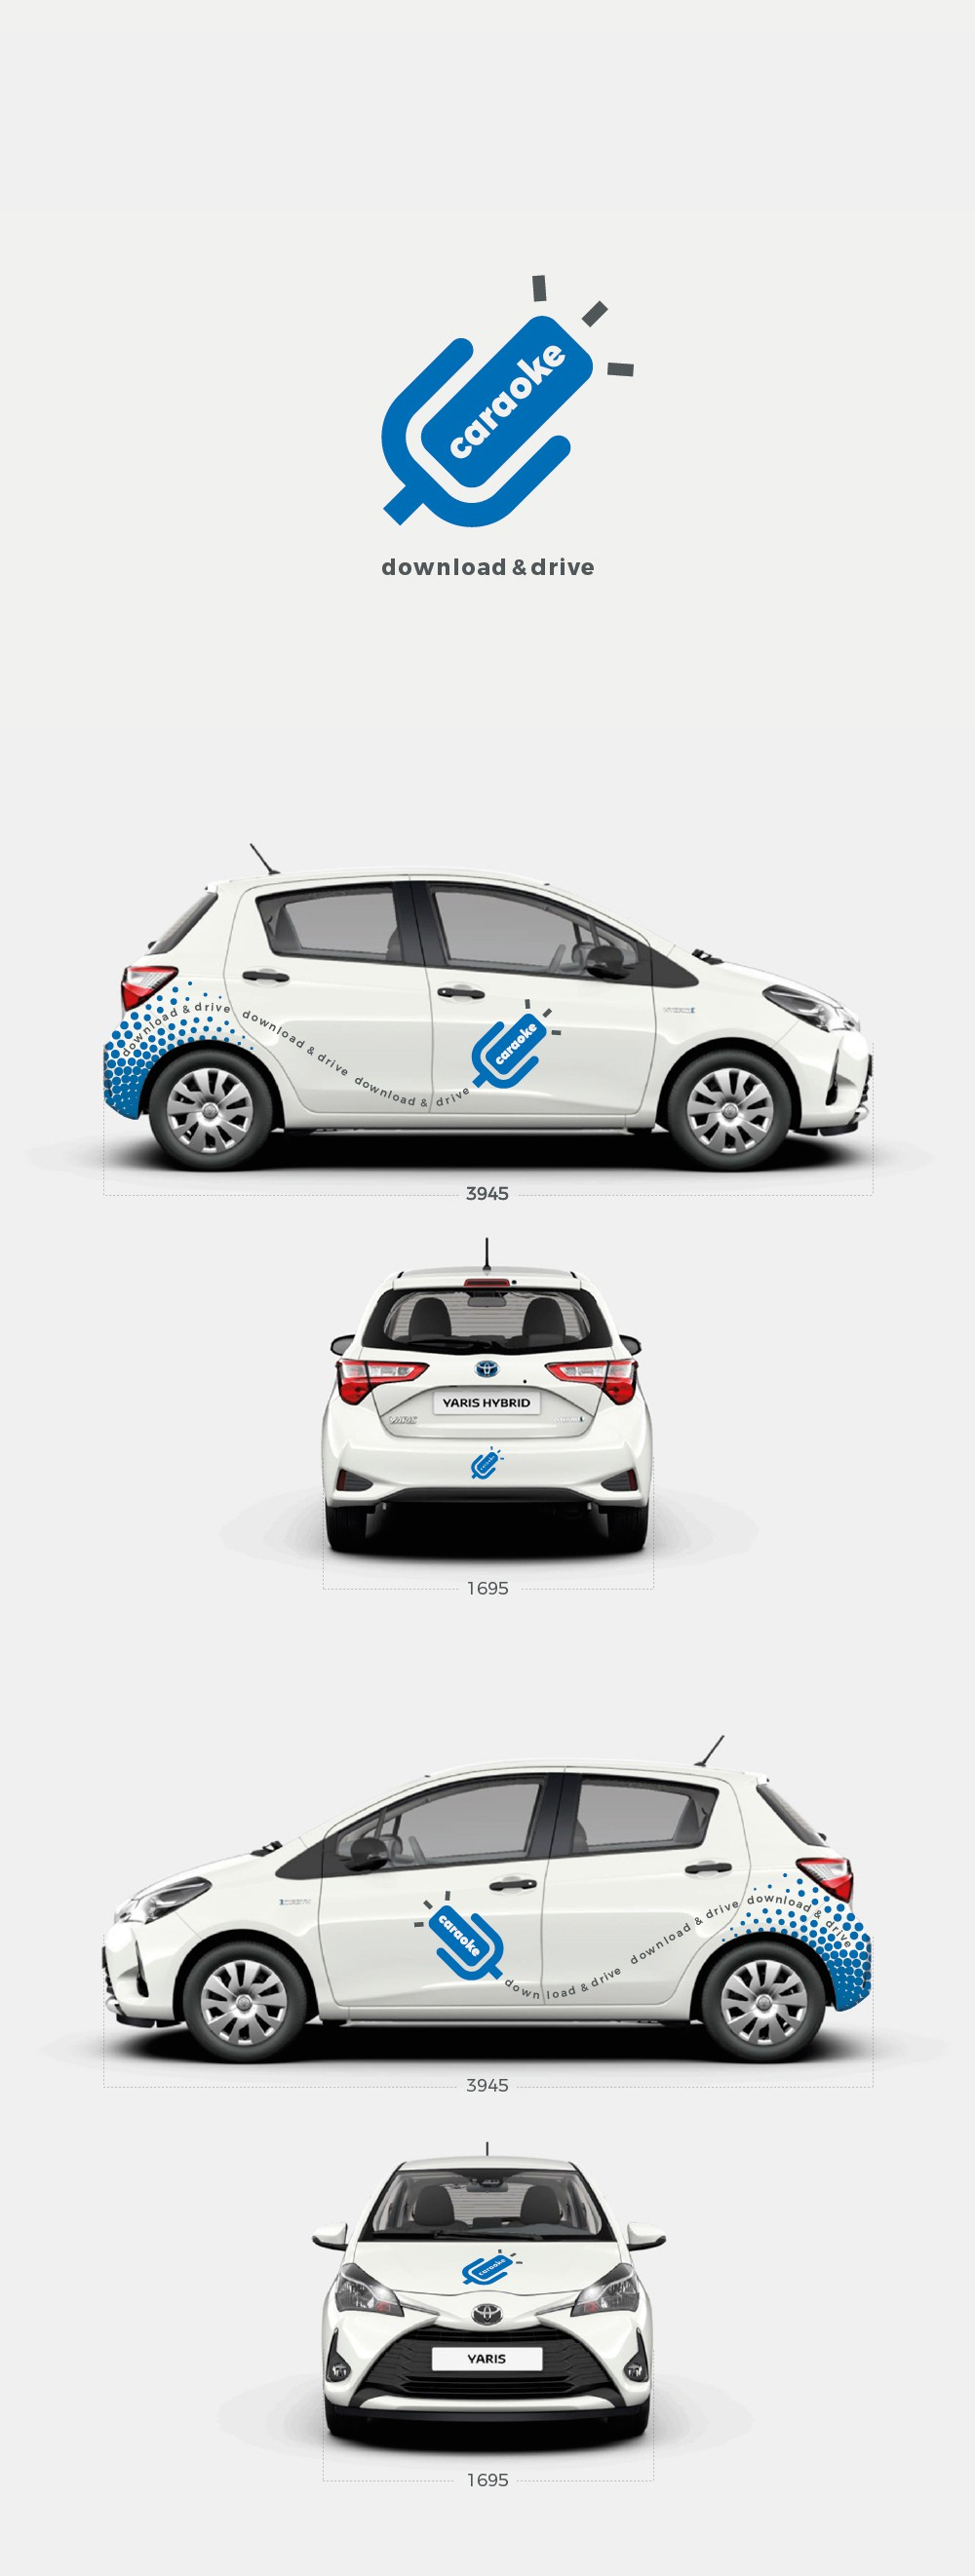 Design the car paint for a large car sharing app.